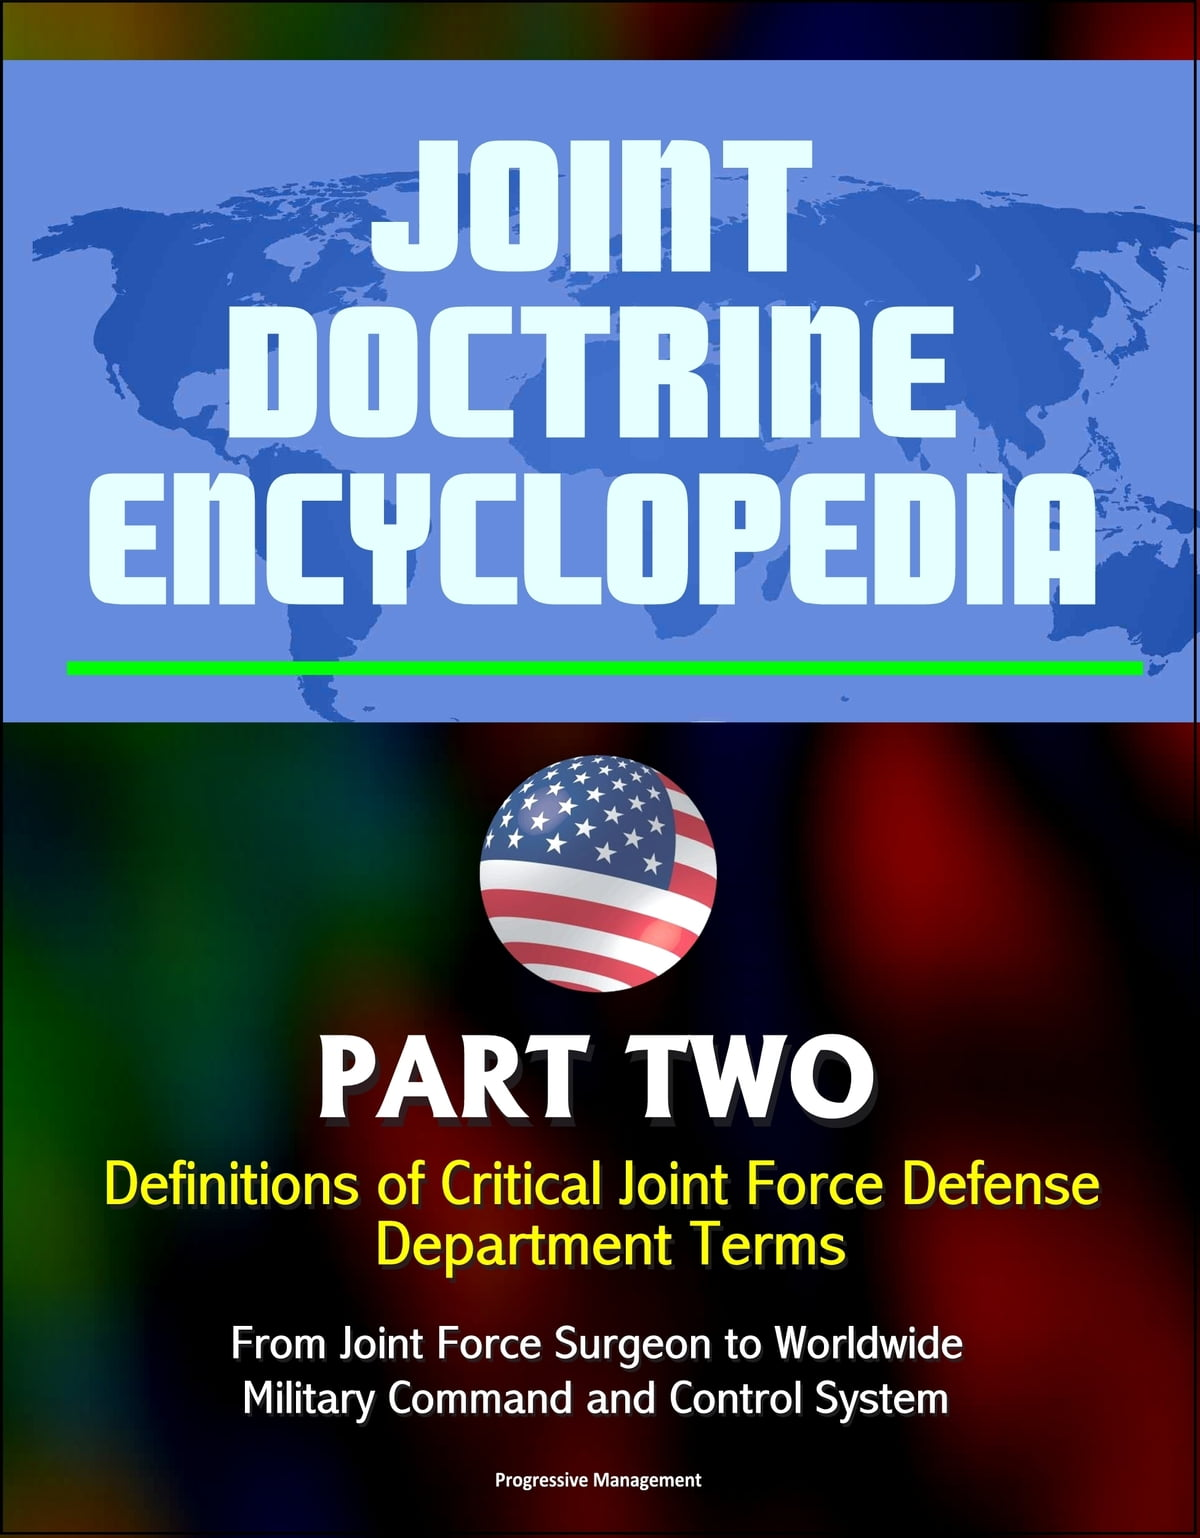 Joint Doctrine Encyclopedia Part Two Definitions Of Critical Traffic Control Systems Handbook Chapter 3 Concepts Urban Force Defense Department Terms From Surgeon To Worldwide Military Command And System Ebook